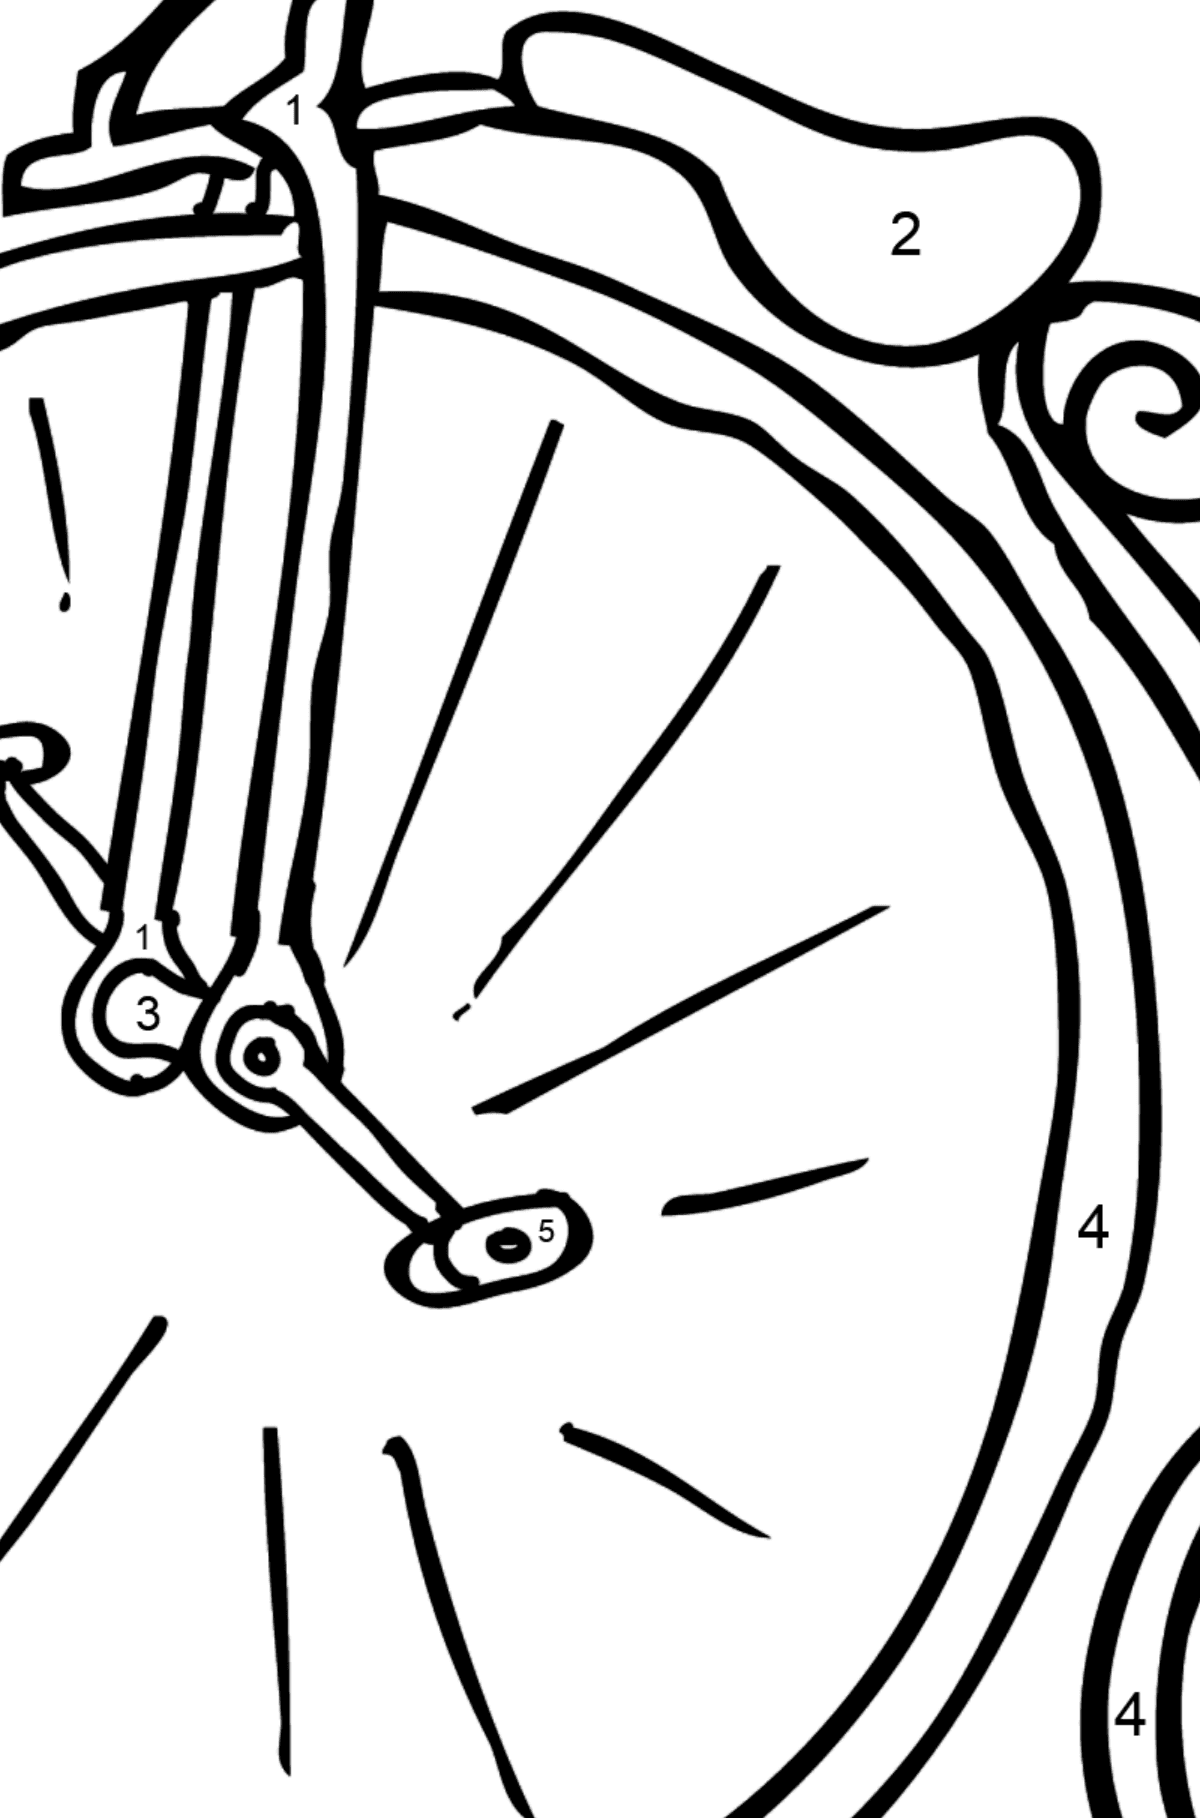 Coloring Page - A High-Wheel Cycle – Unicycle - Coloring by Numbers for Kids